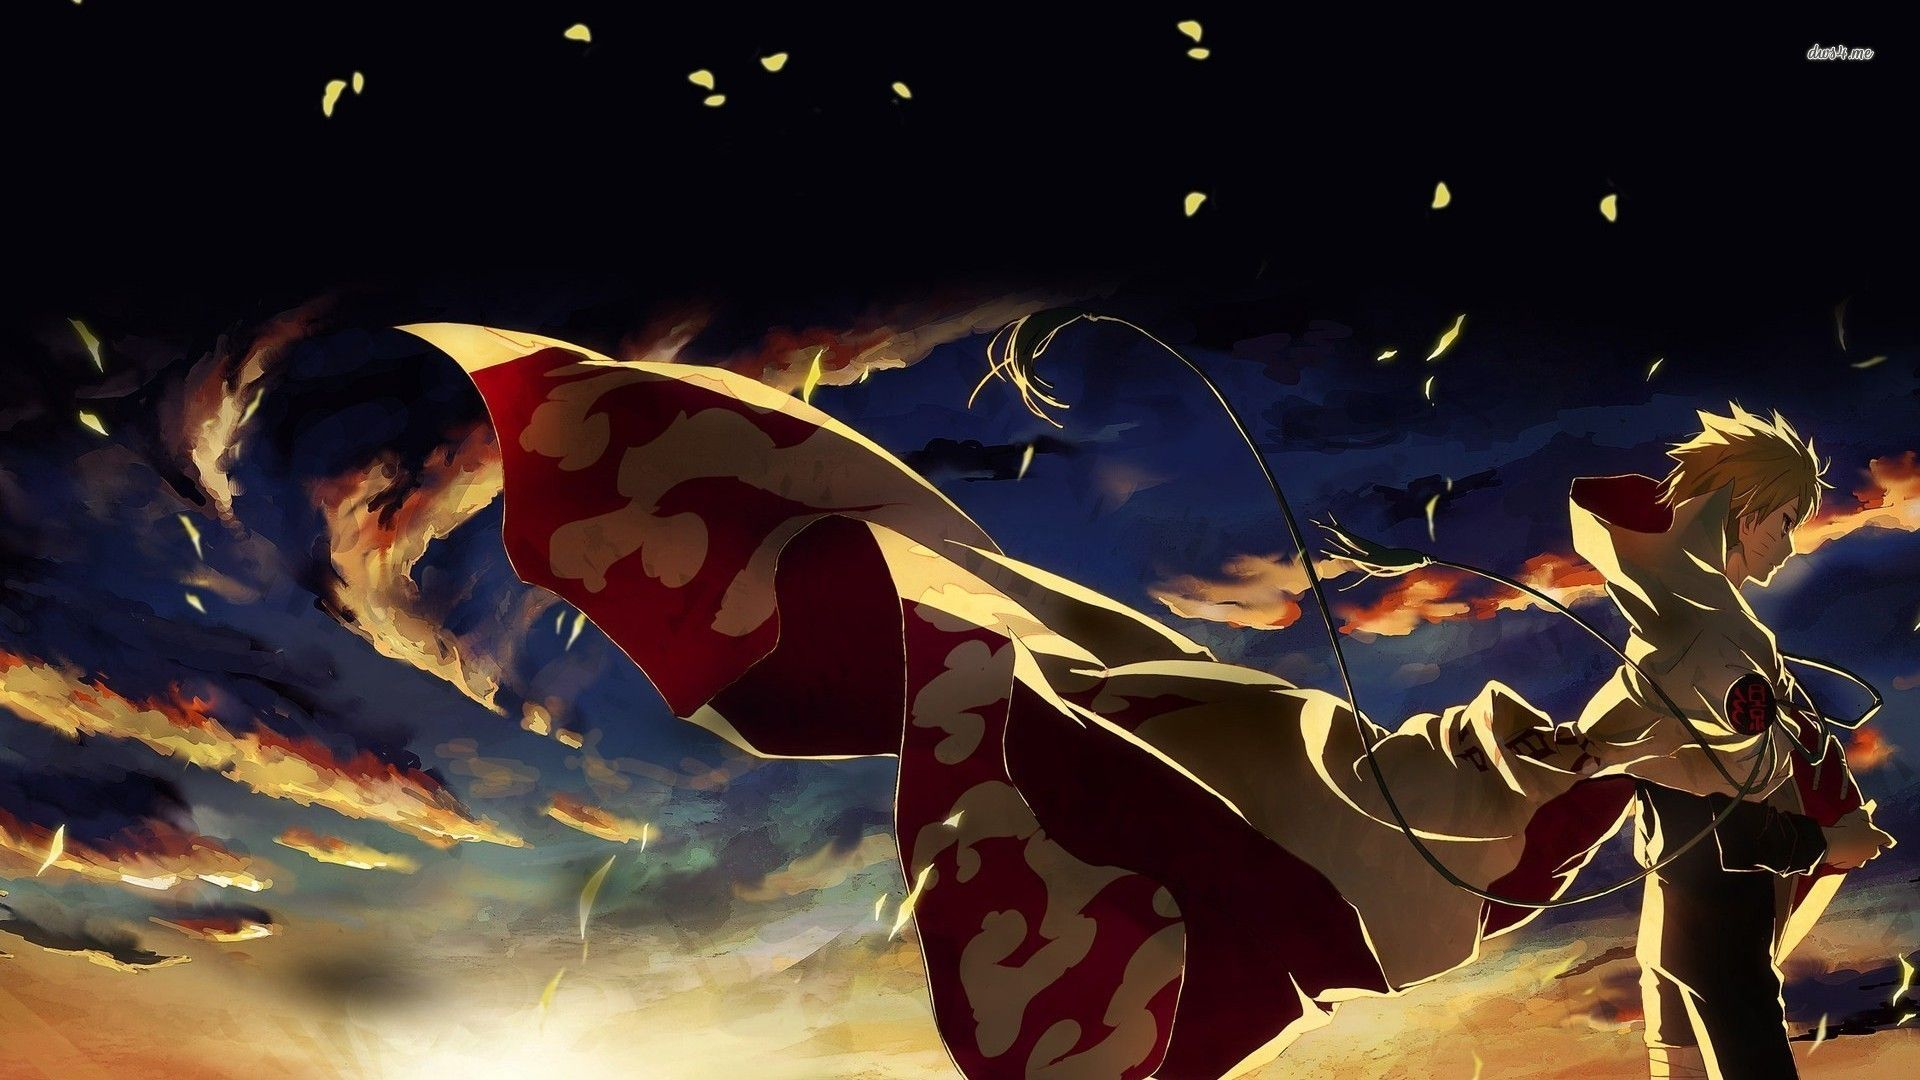 65 4k Naruto Wallpapers On Wallpaperplay Wallpapers Hd Anime